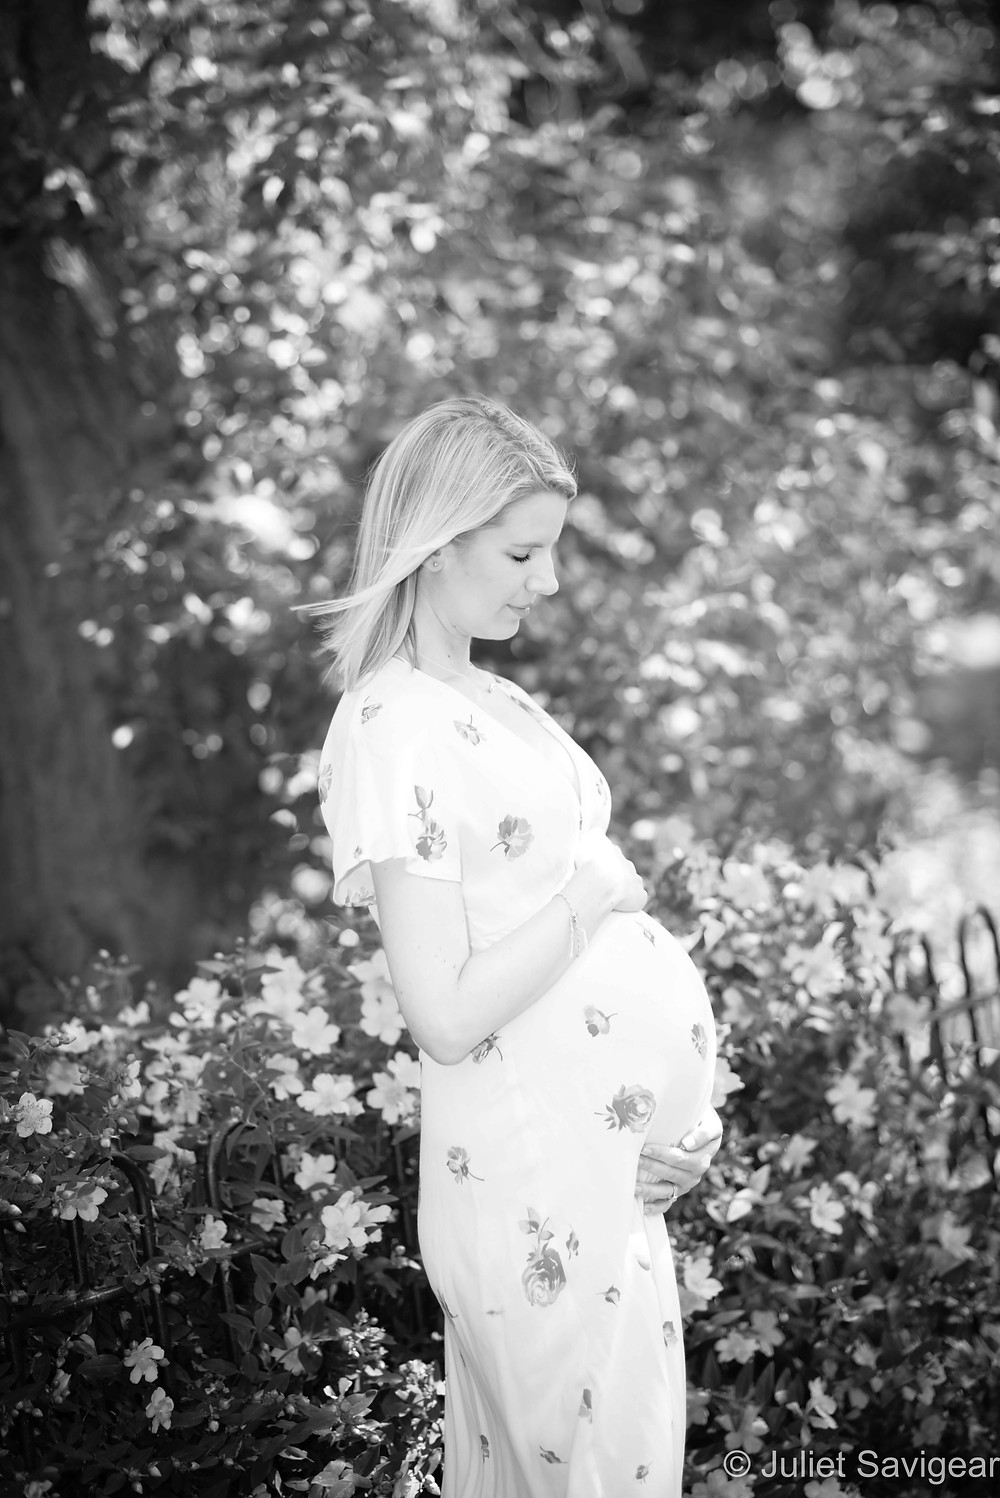 Stunning maternity photography